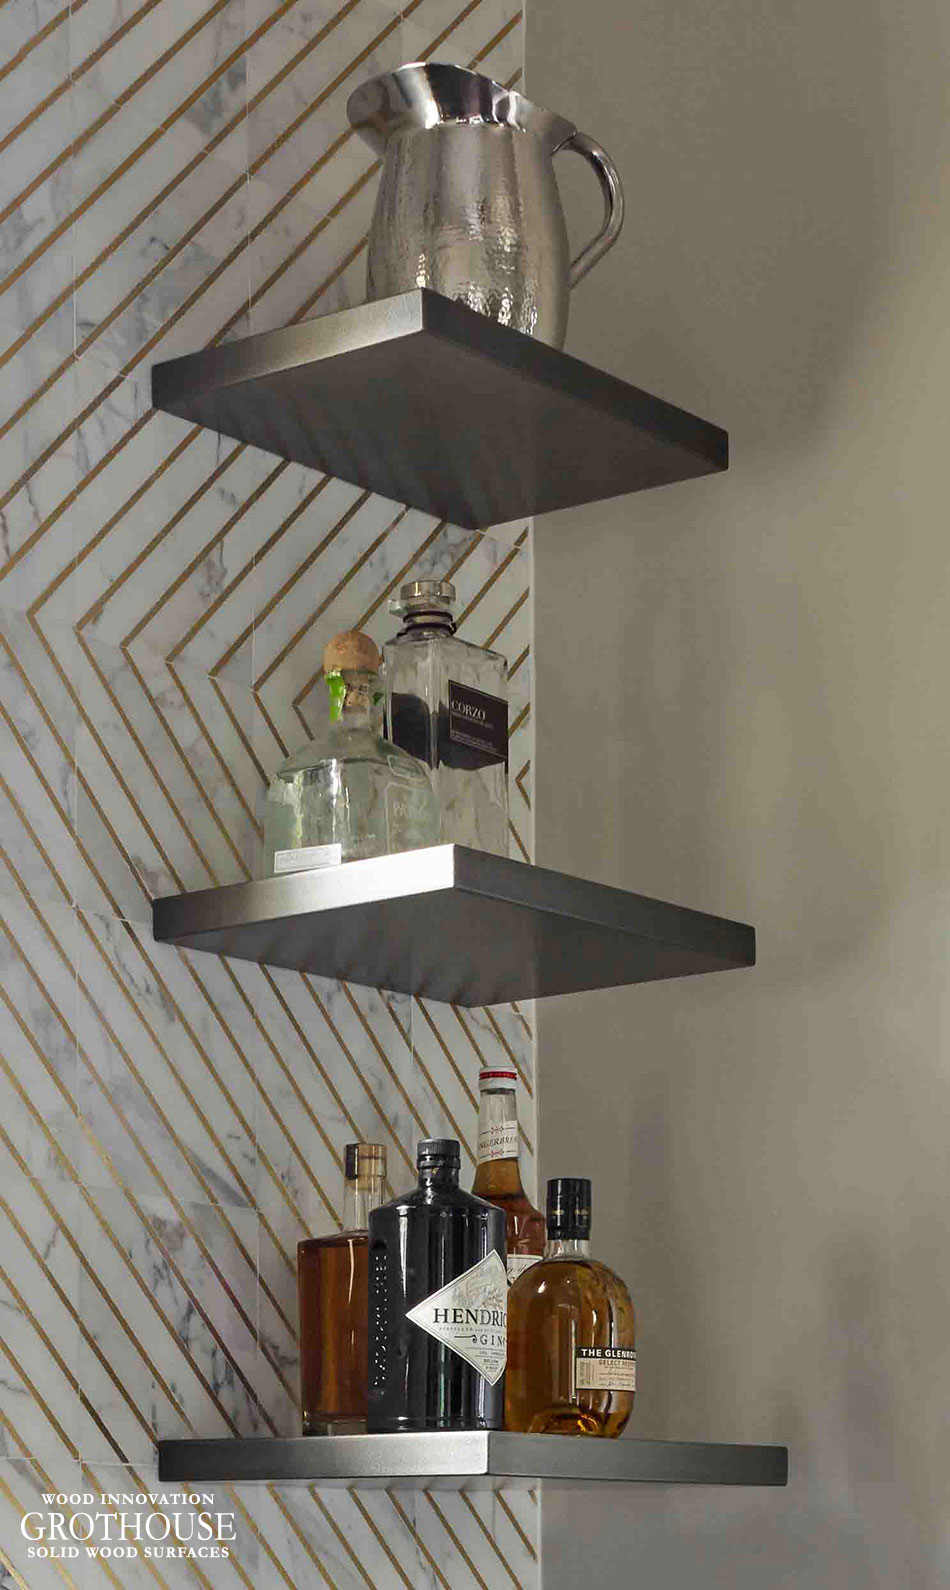 Argentum Metal Shelves for Kitchen of the Year 2016